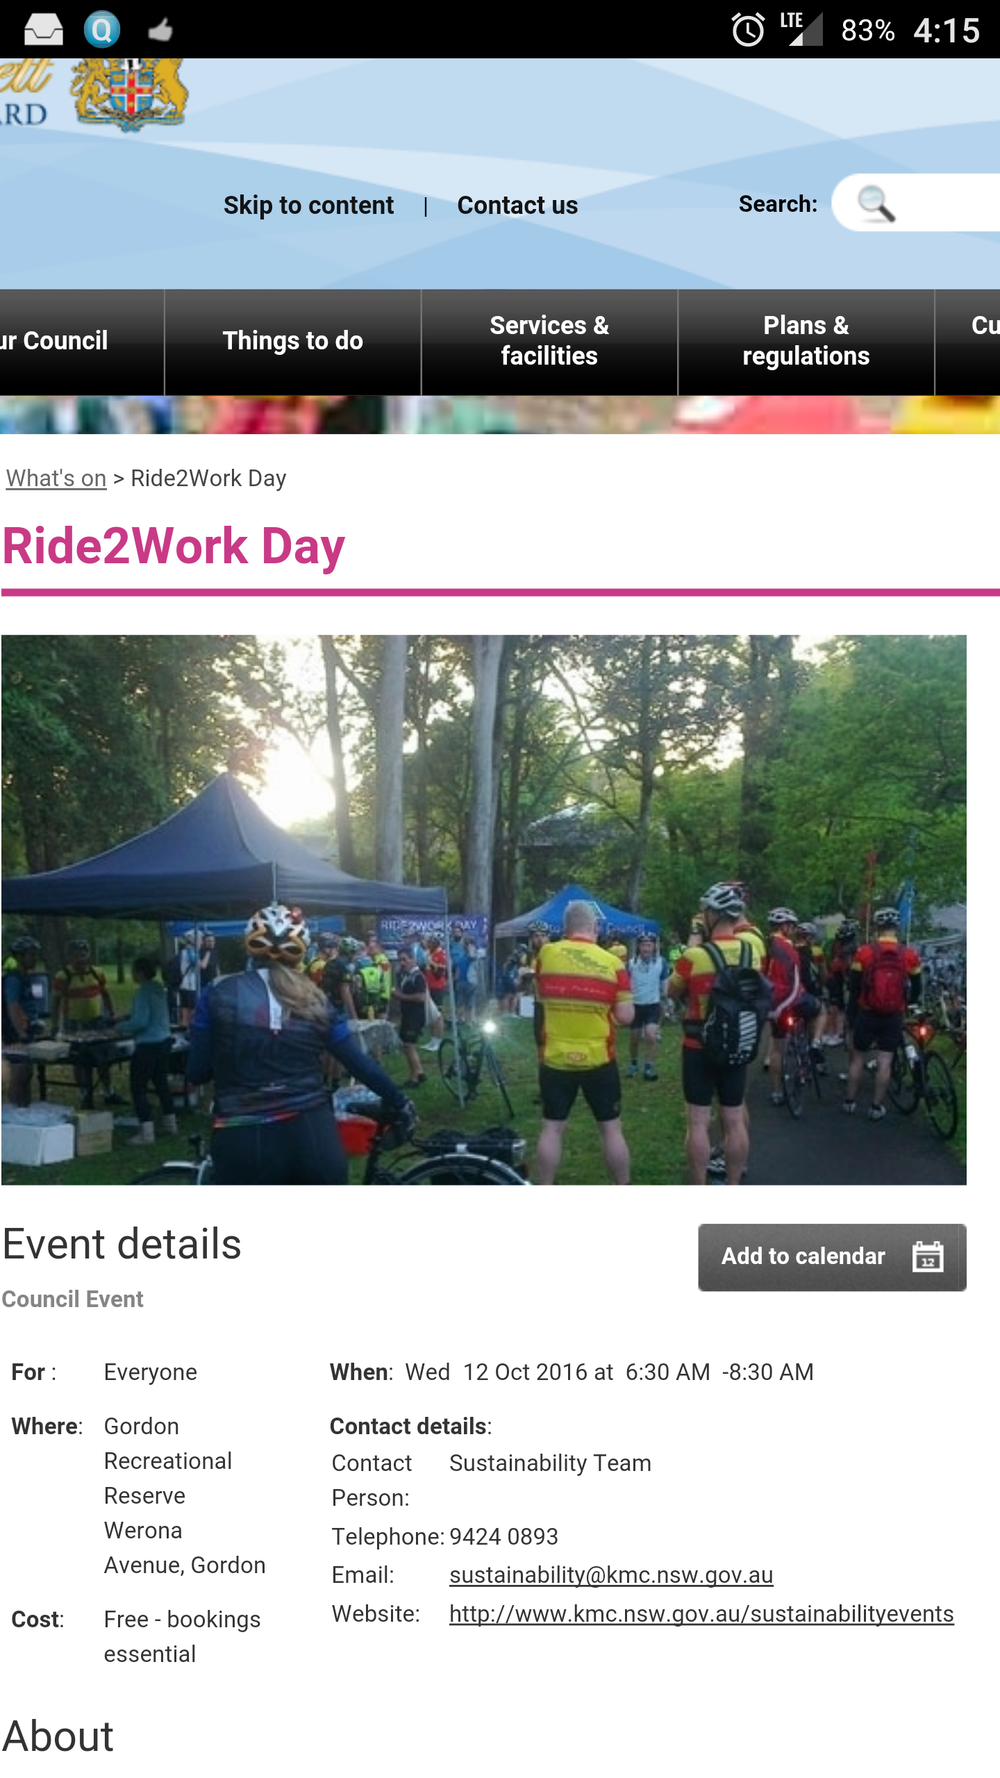 Who's that in the foreground with her back to the camera ? C'est moi !  Bundled up like an Eskimo, but present and probably totally wired on adrenalin.    Kuringai Council using a pic of my backside from 2015 to promote the 2016 Ride2Work day. This year I was interviewed and had my pictures taken at several free breakfasts along the route. In all of them i am sans make-up, a bit pink-cheeked from the ride, messy wisps of hair escaping from my helmet, but the smile can be seen from outer-space. Progress indeed ...